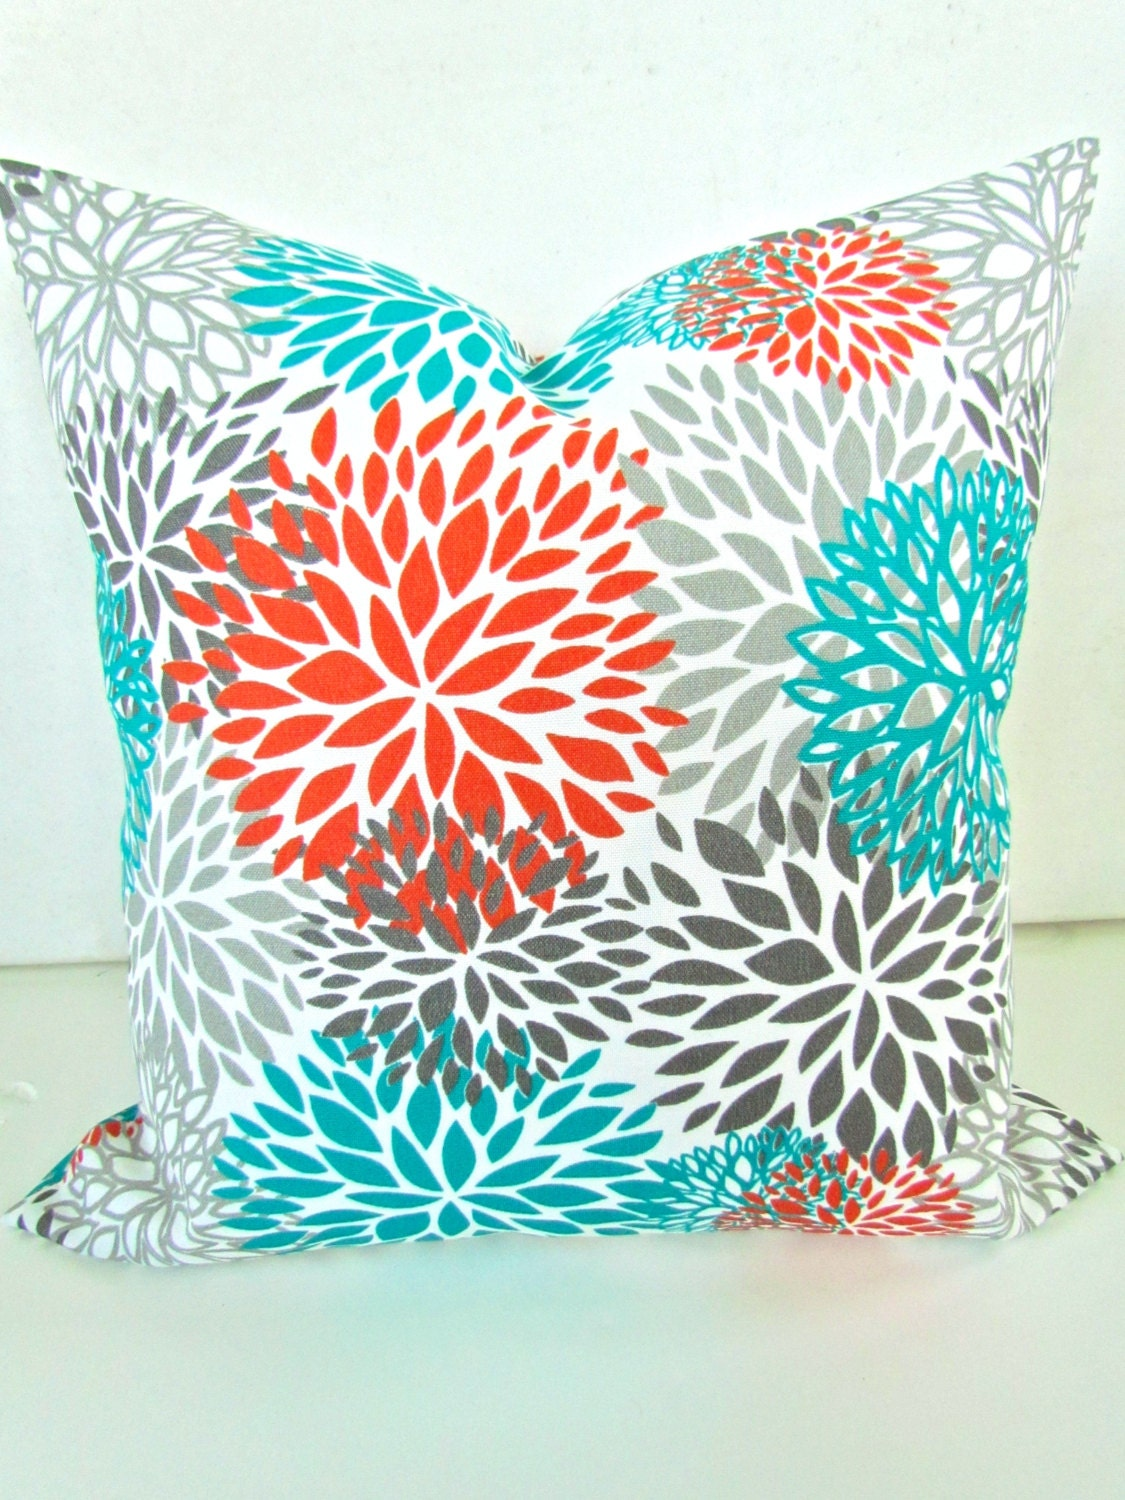 Throw Pillow Etsy : ORANGE PILLOWS Orange Teal Throw Pillow Covers Turquoise